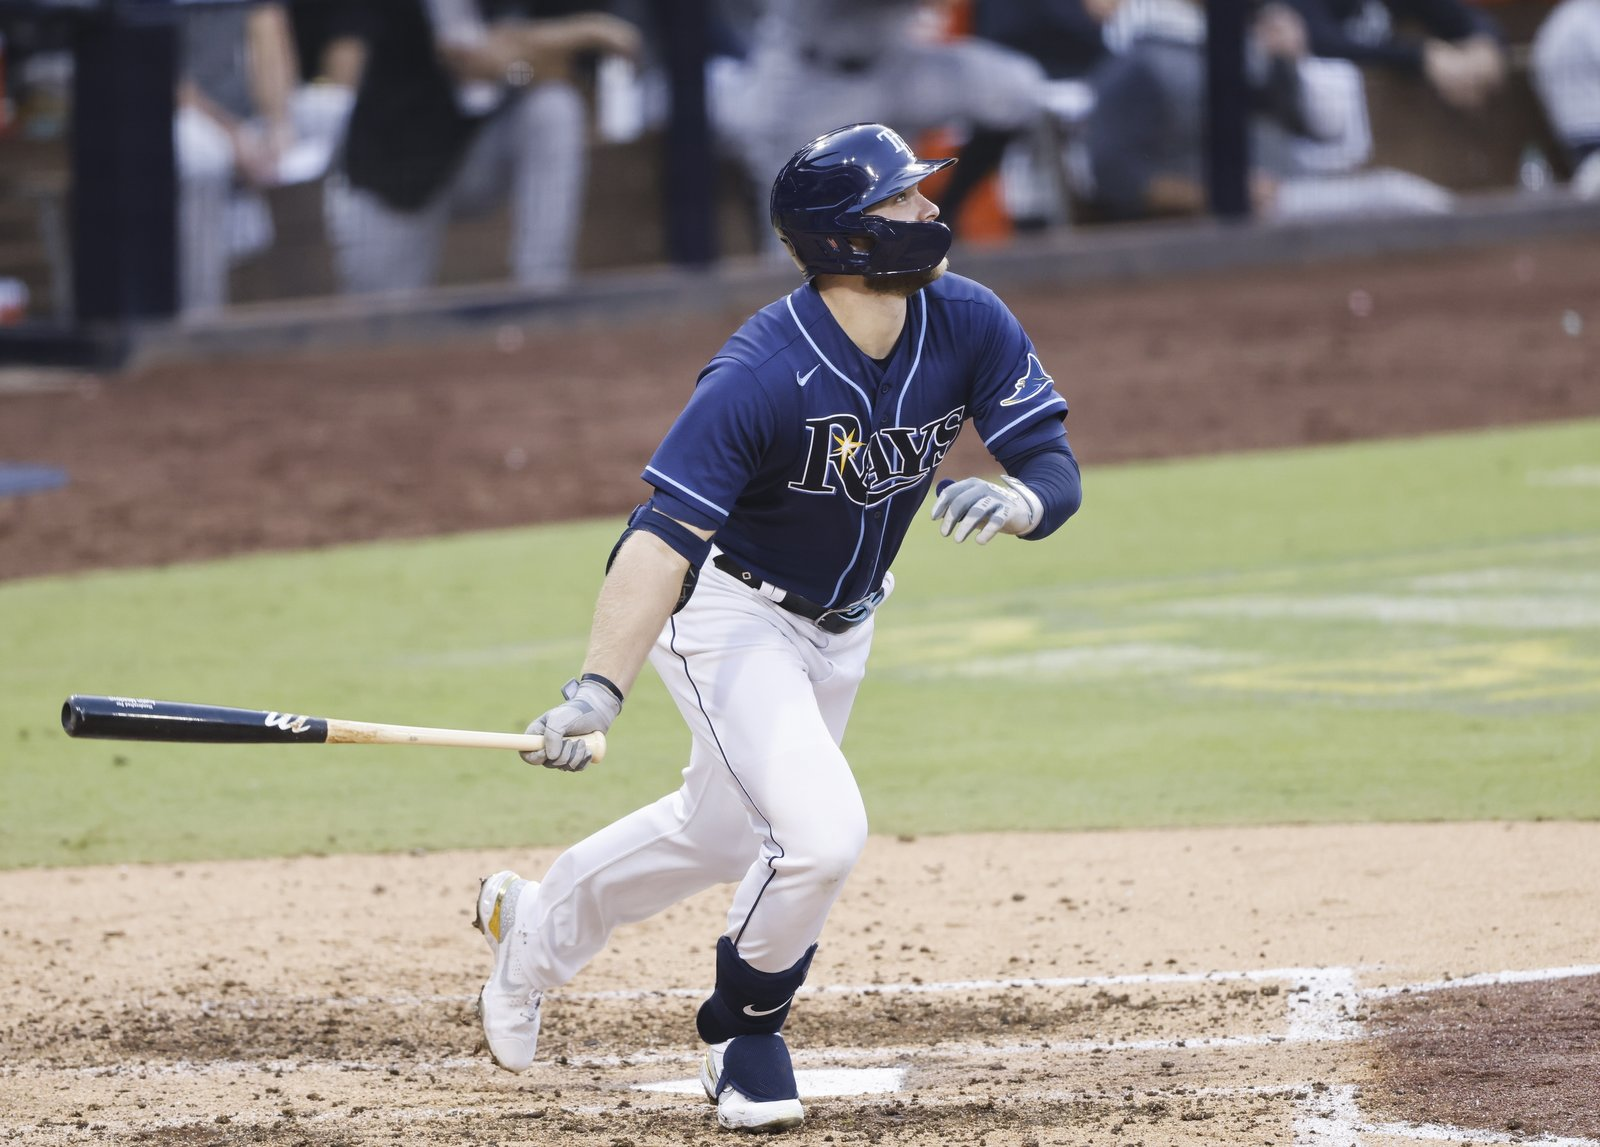 Rays elimina a los Yanquis